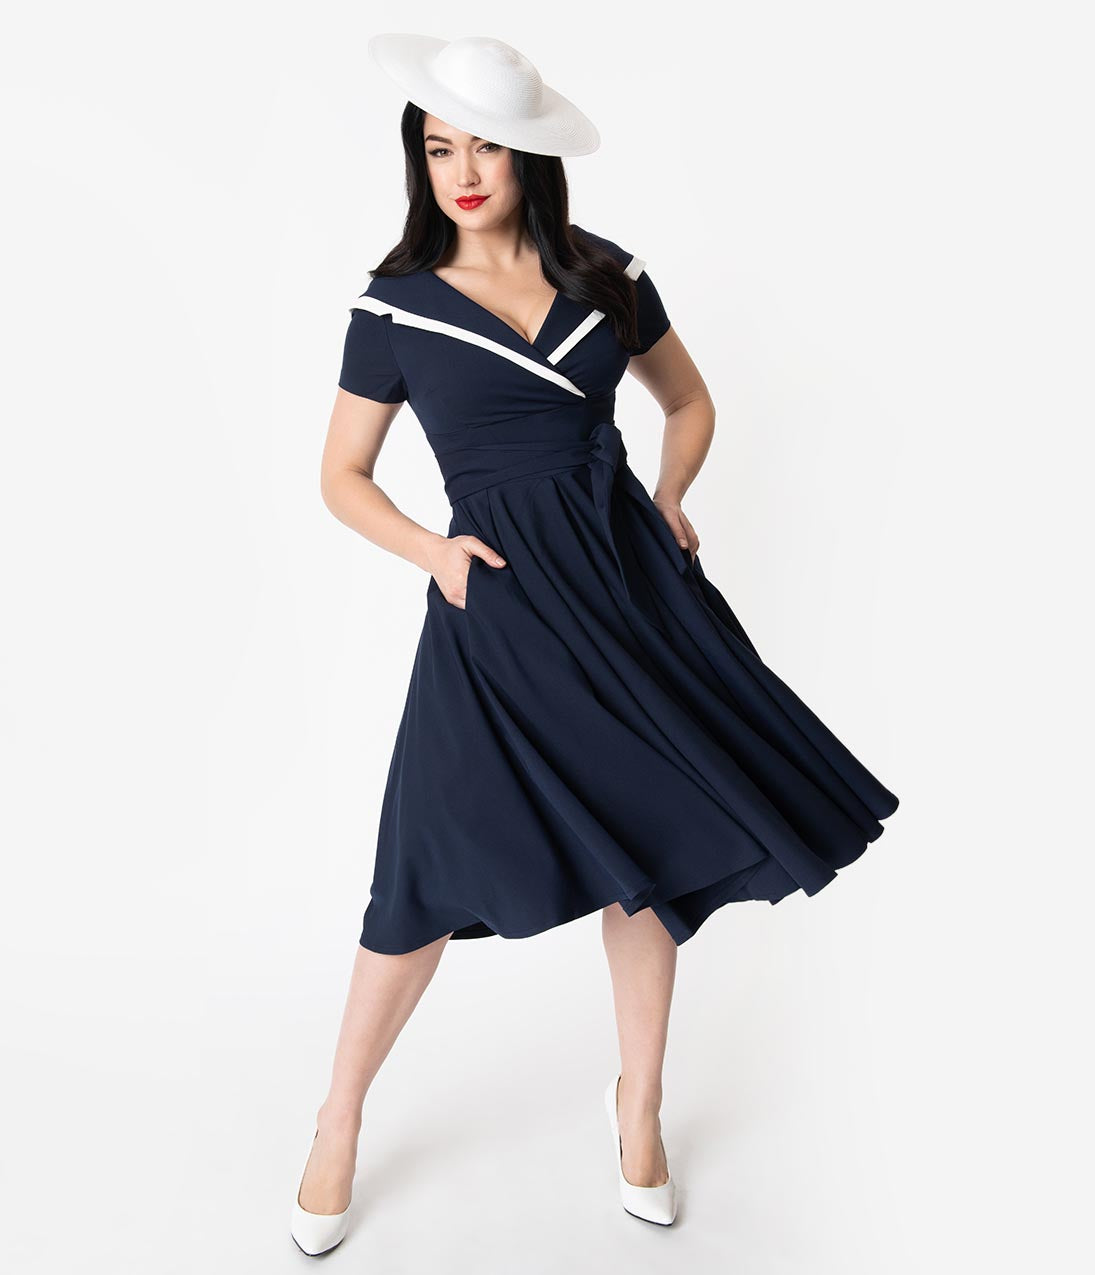 Agent Peggy Carter Costume, Dress, Hats Vintage Diva 1940S Navy  White Short Sleeve Greta Swing Dress $99.00 AT vintagedancer.com